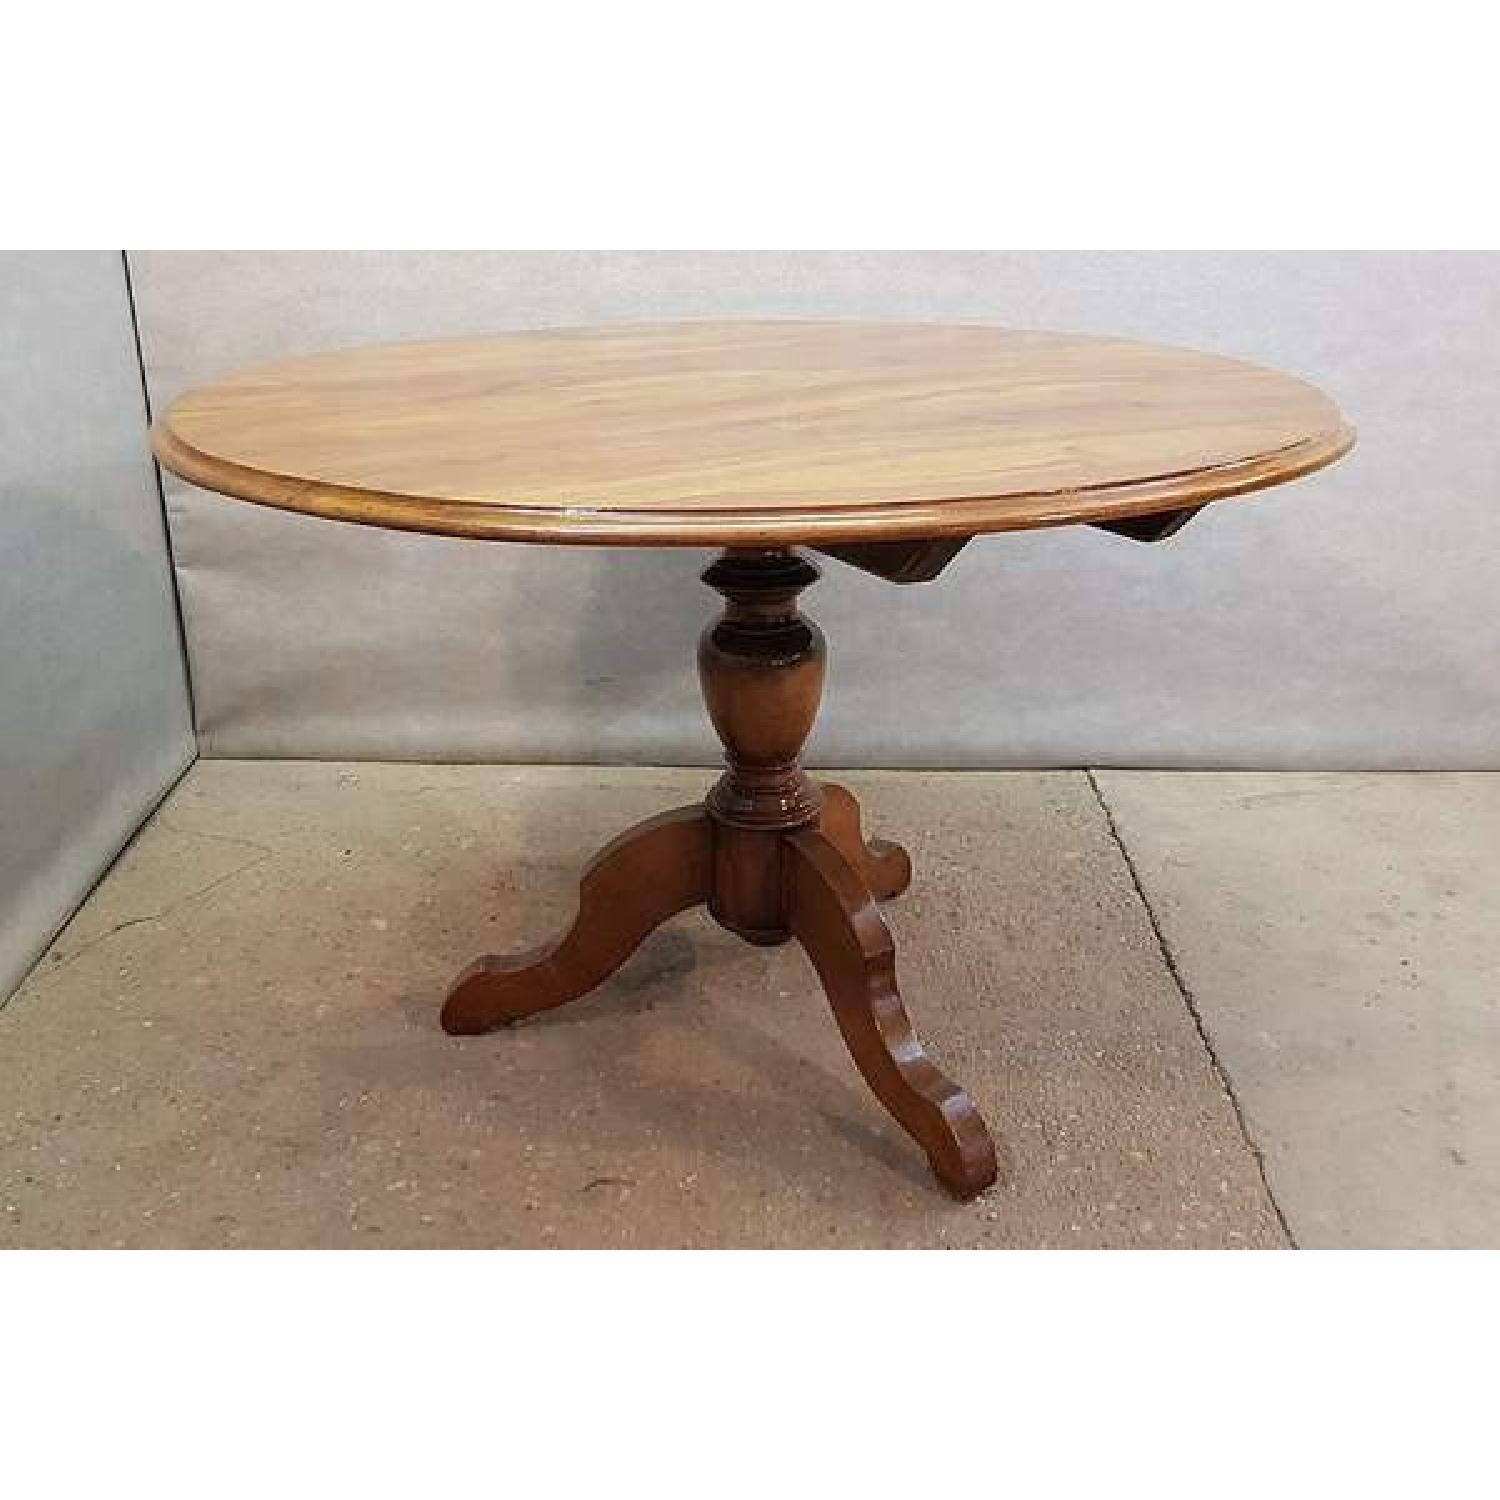 Antique French Walnut Round Tilt Top Occasional Side Table-1